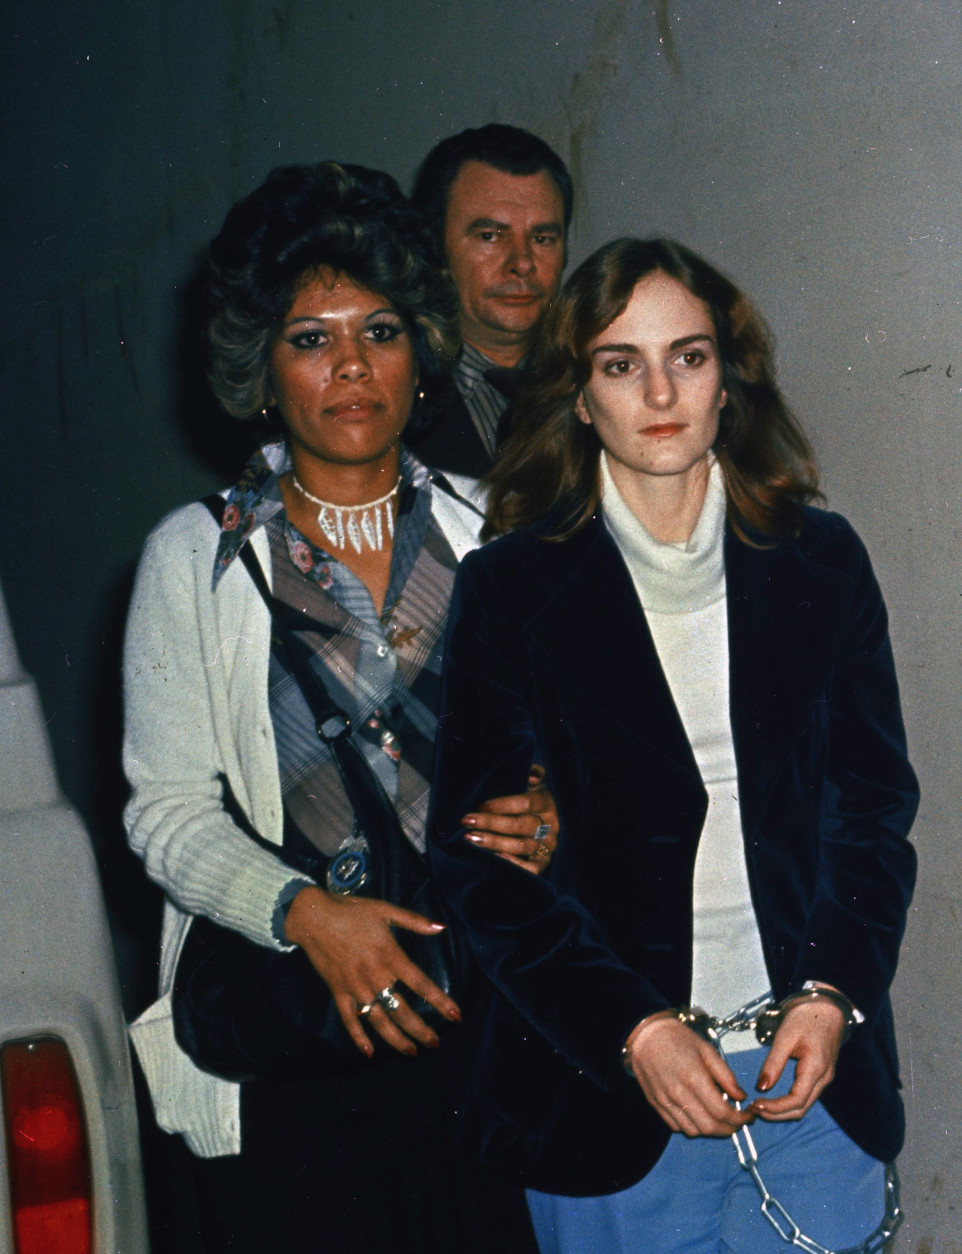 On this date in 1975, newspaper heiress Patricia Hearst was captured by the FBI in San Francisco, 19 months after being kidnapped by the Symbionese Liberation Army. (AP Photo)